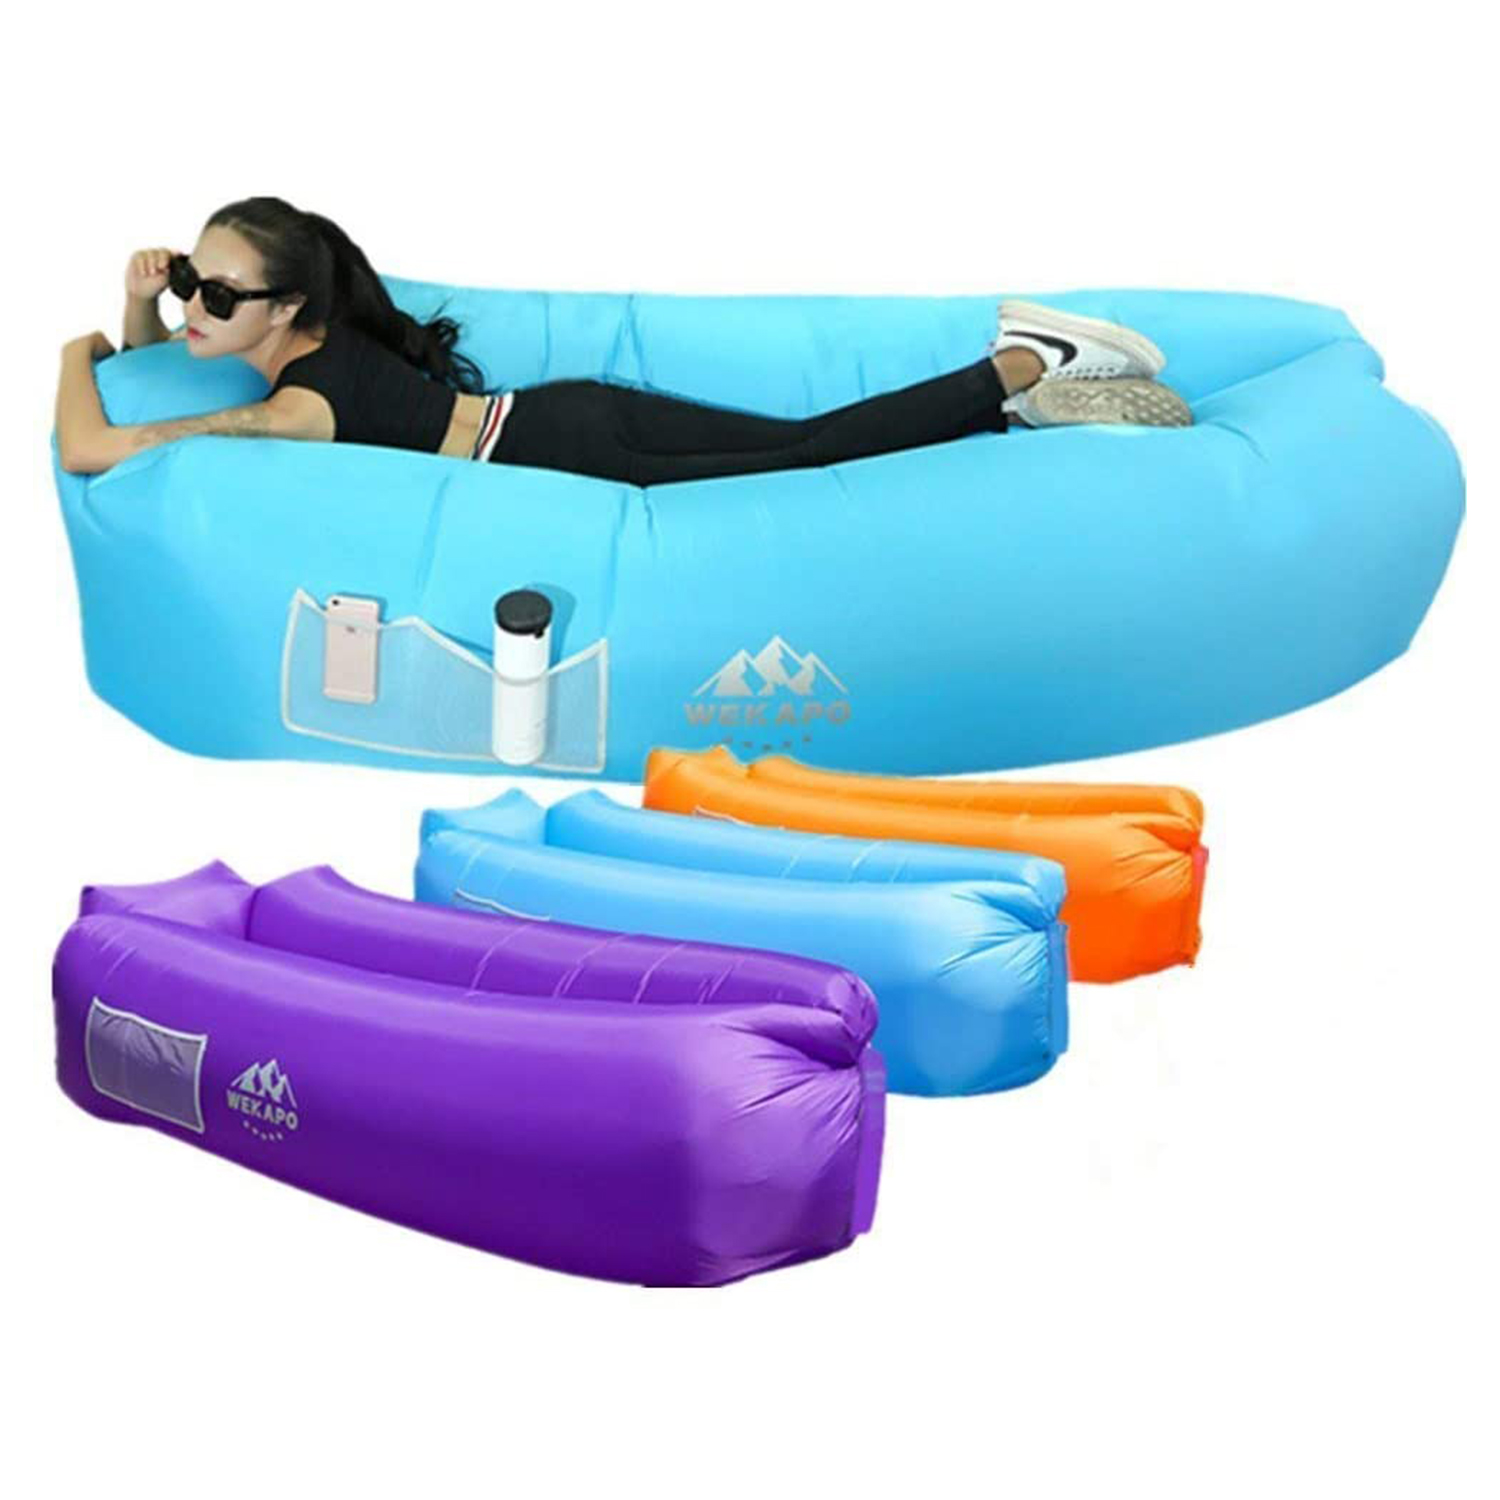 Wekapo Inflatable Lounger Air Sofa Hammock-Portable